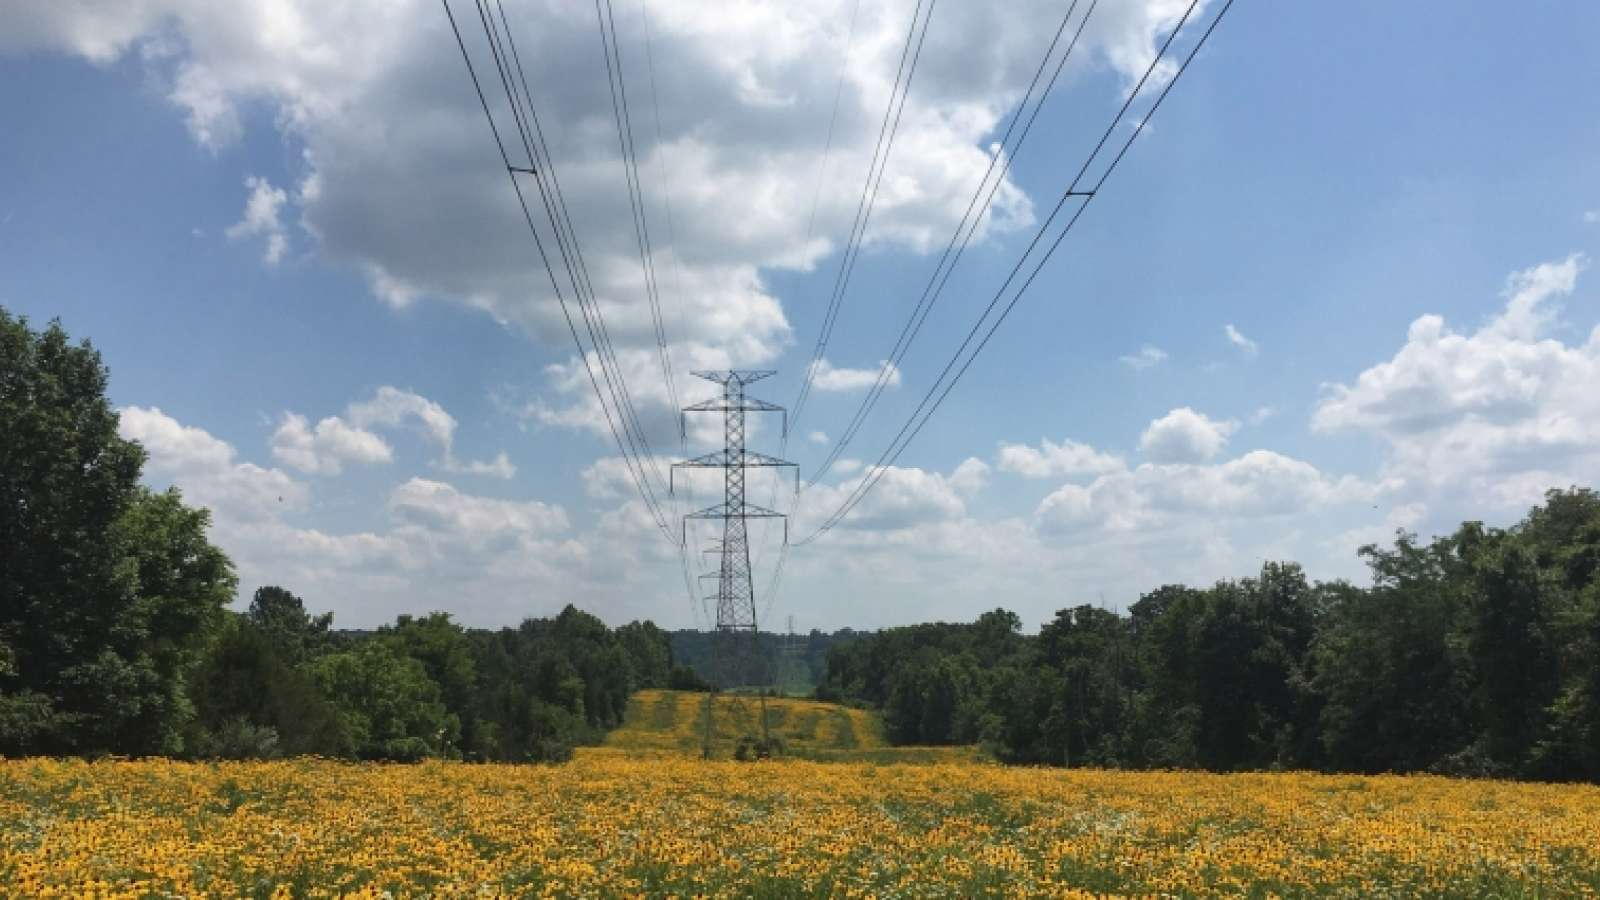 transmission tower and power lines in a right of way with trees on each side